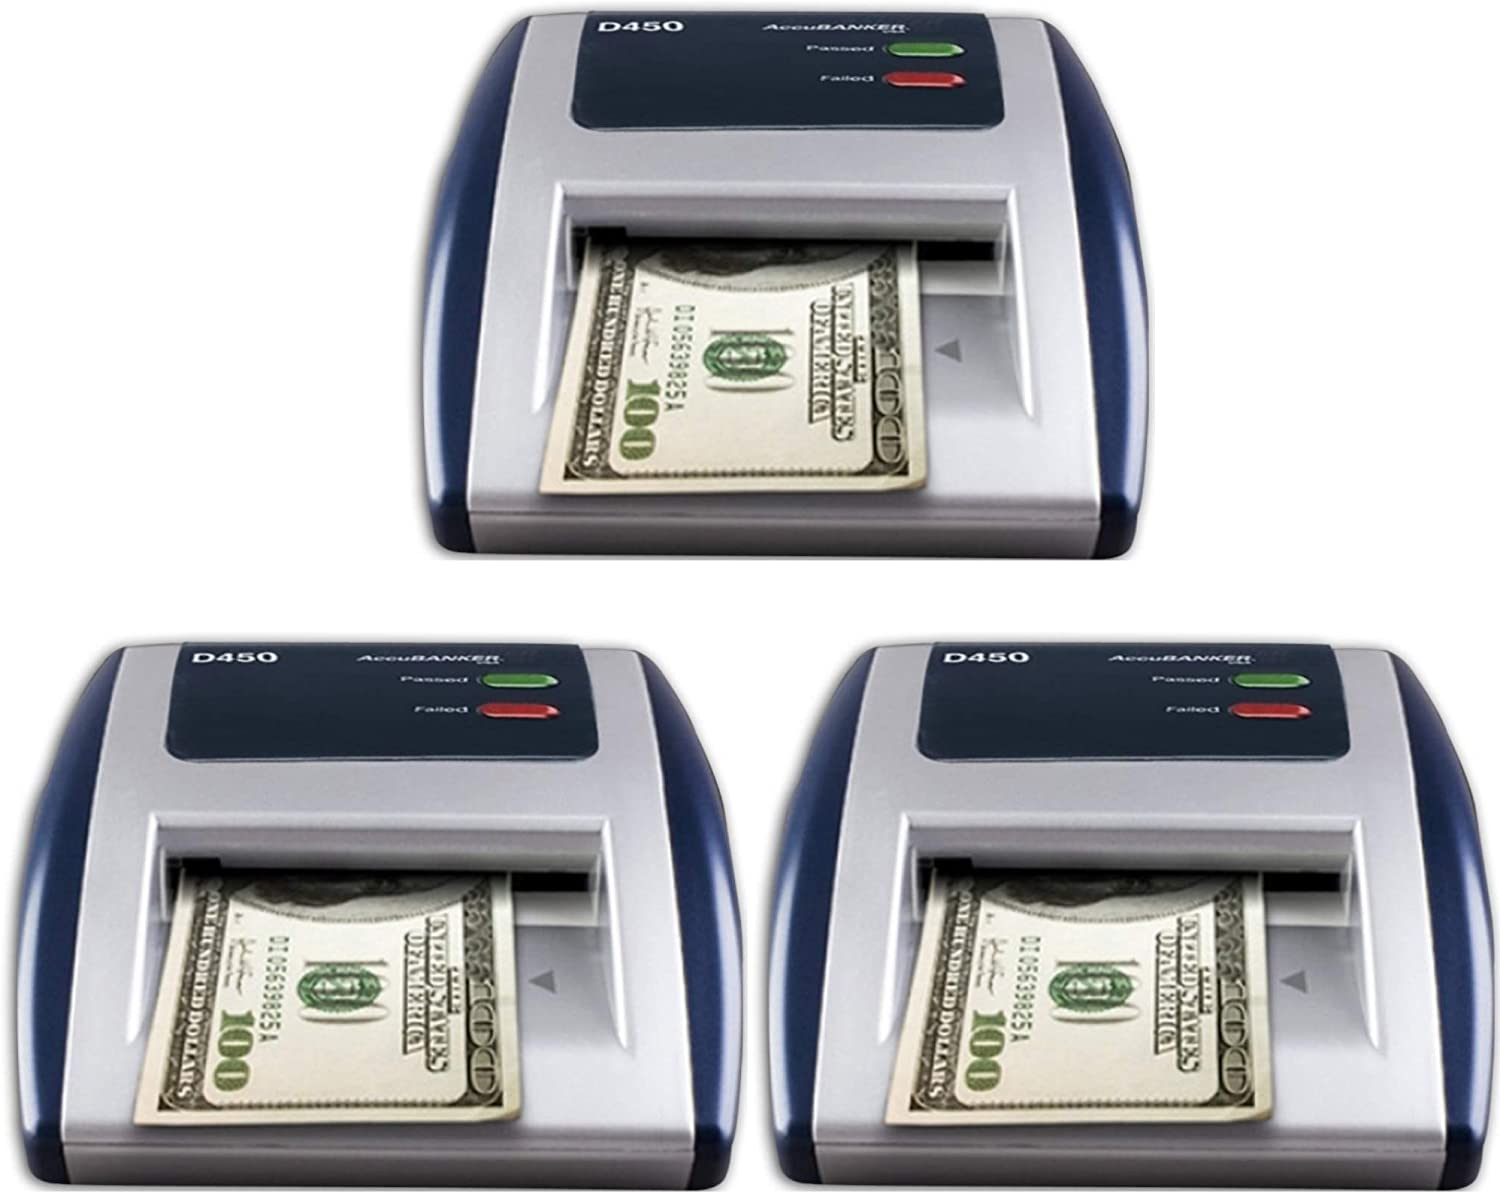 AccuBANKER D450 Pack of 3 Counterfeit Bill Scanner Detector, Immediate banknote verification, Reduces Counterfeit Losses Due to Human Error, Multi-detection Function